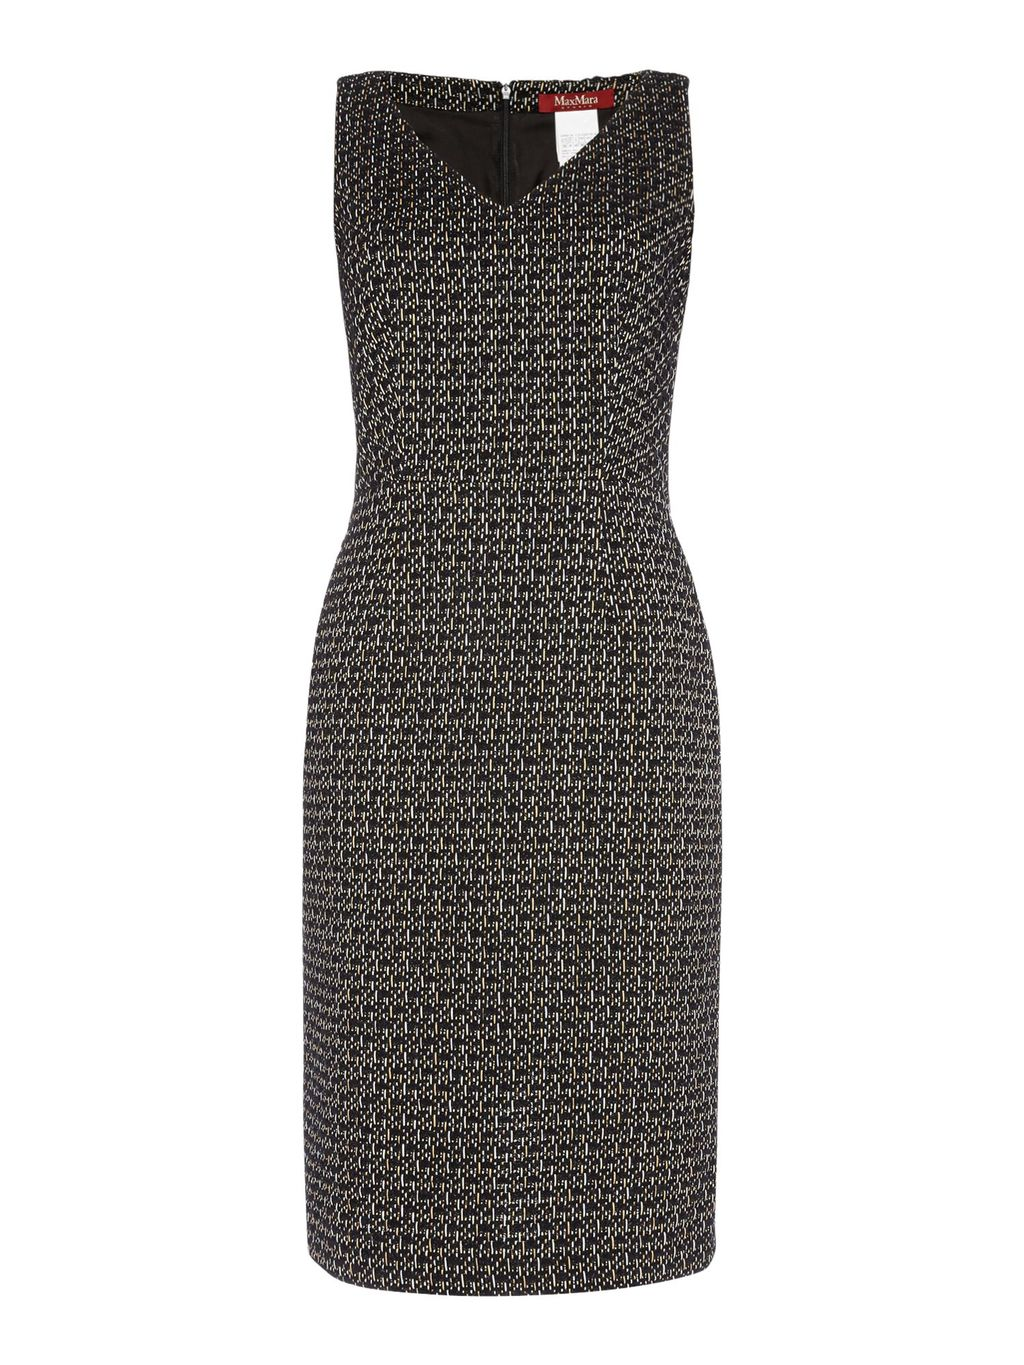 Eritea Sleeveless Boucle V Neck Dress, Black - style: shift; neckline: v-neck; fit: tailored/fitted; sleeve style: sleeveless; predominant colour: charcoal; occasions: evening; length: just above the knee; fibres: cotton - mix; sleeve length: sleeveless; pattern type: fabric; pattern: patterned/print; texture group: other - light to midweight; season: s/s 2016; wardrobe: event